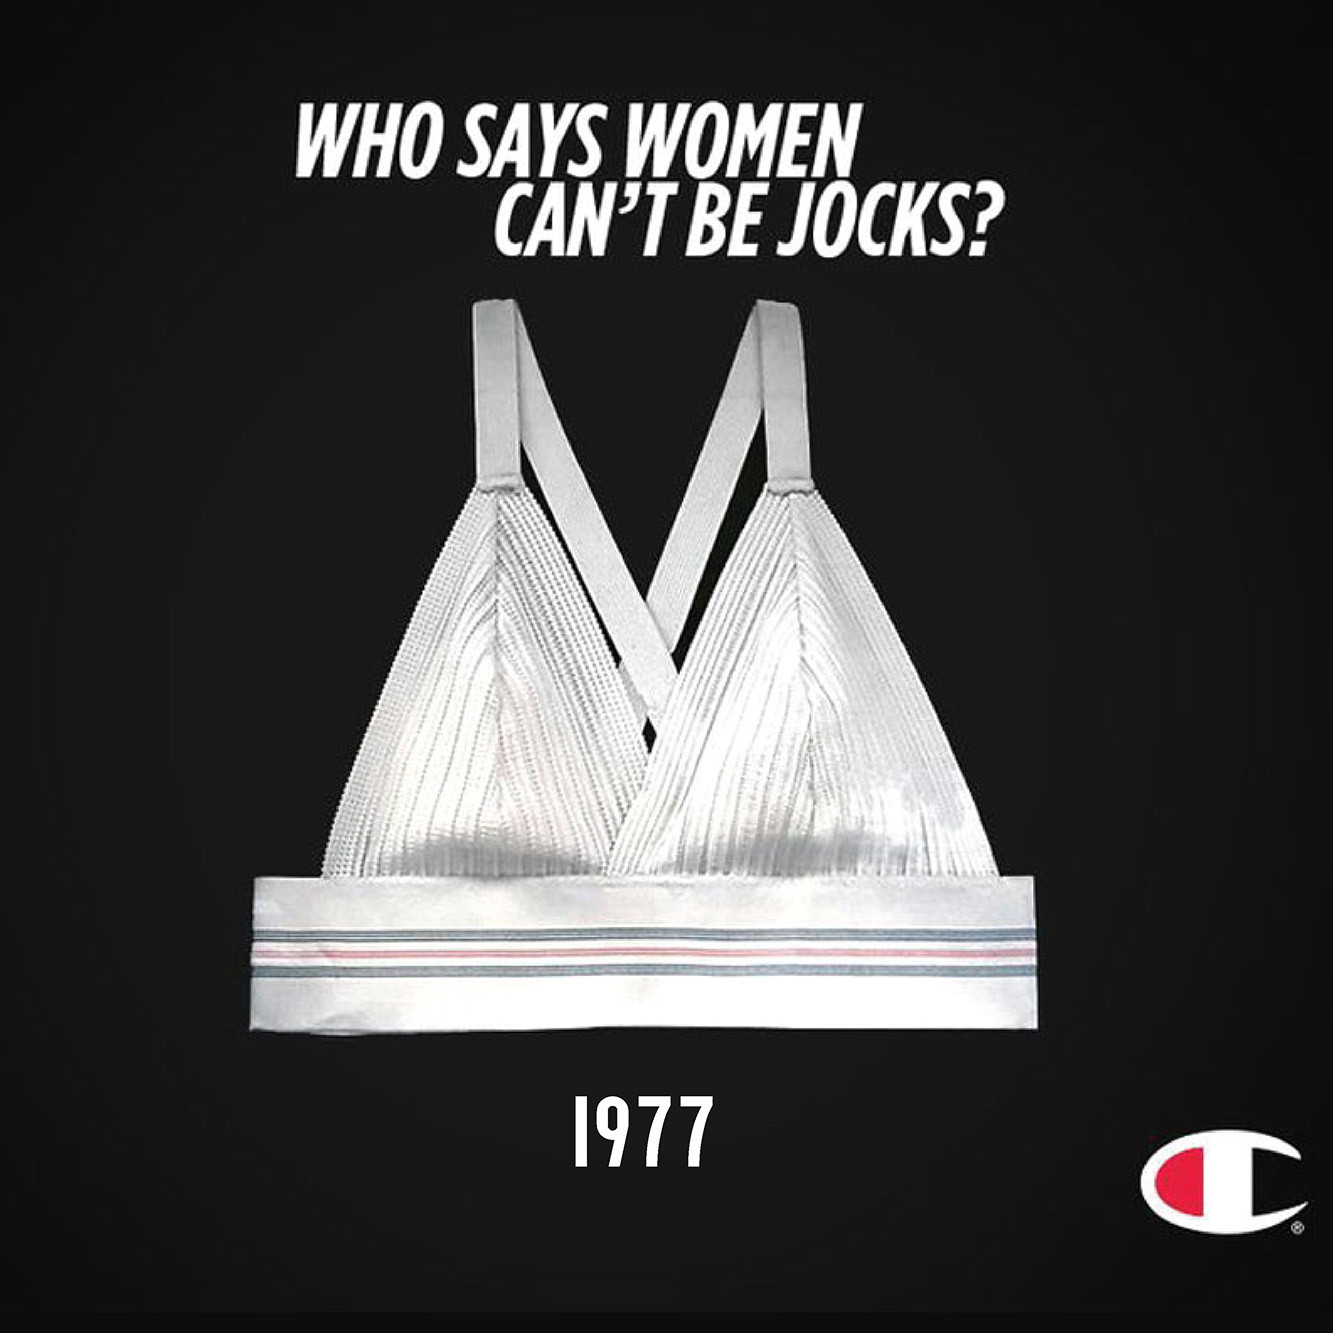 a1e8a690f8 The first sports bra was two jock straps stitched together by Lisa Lindahl  and Polly Smith